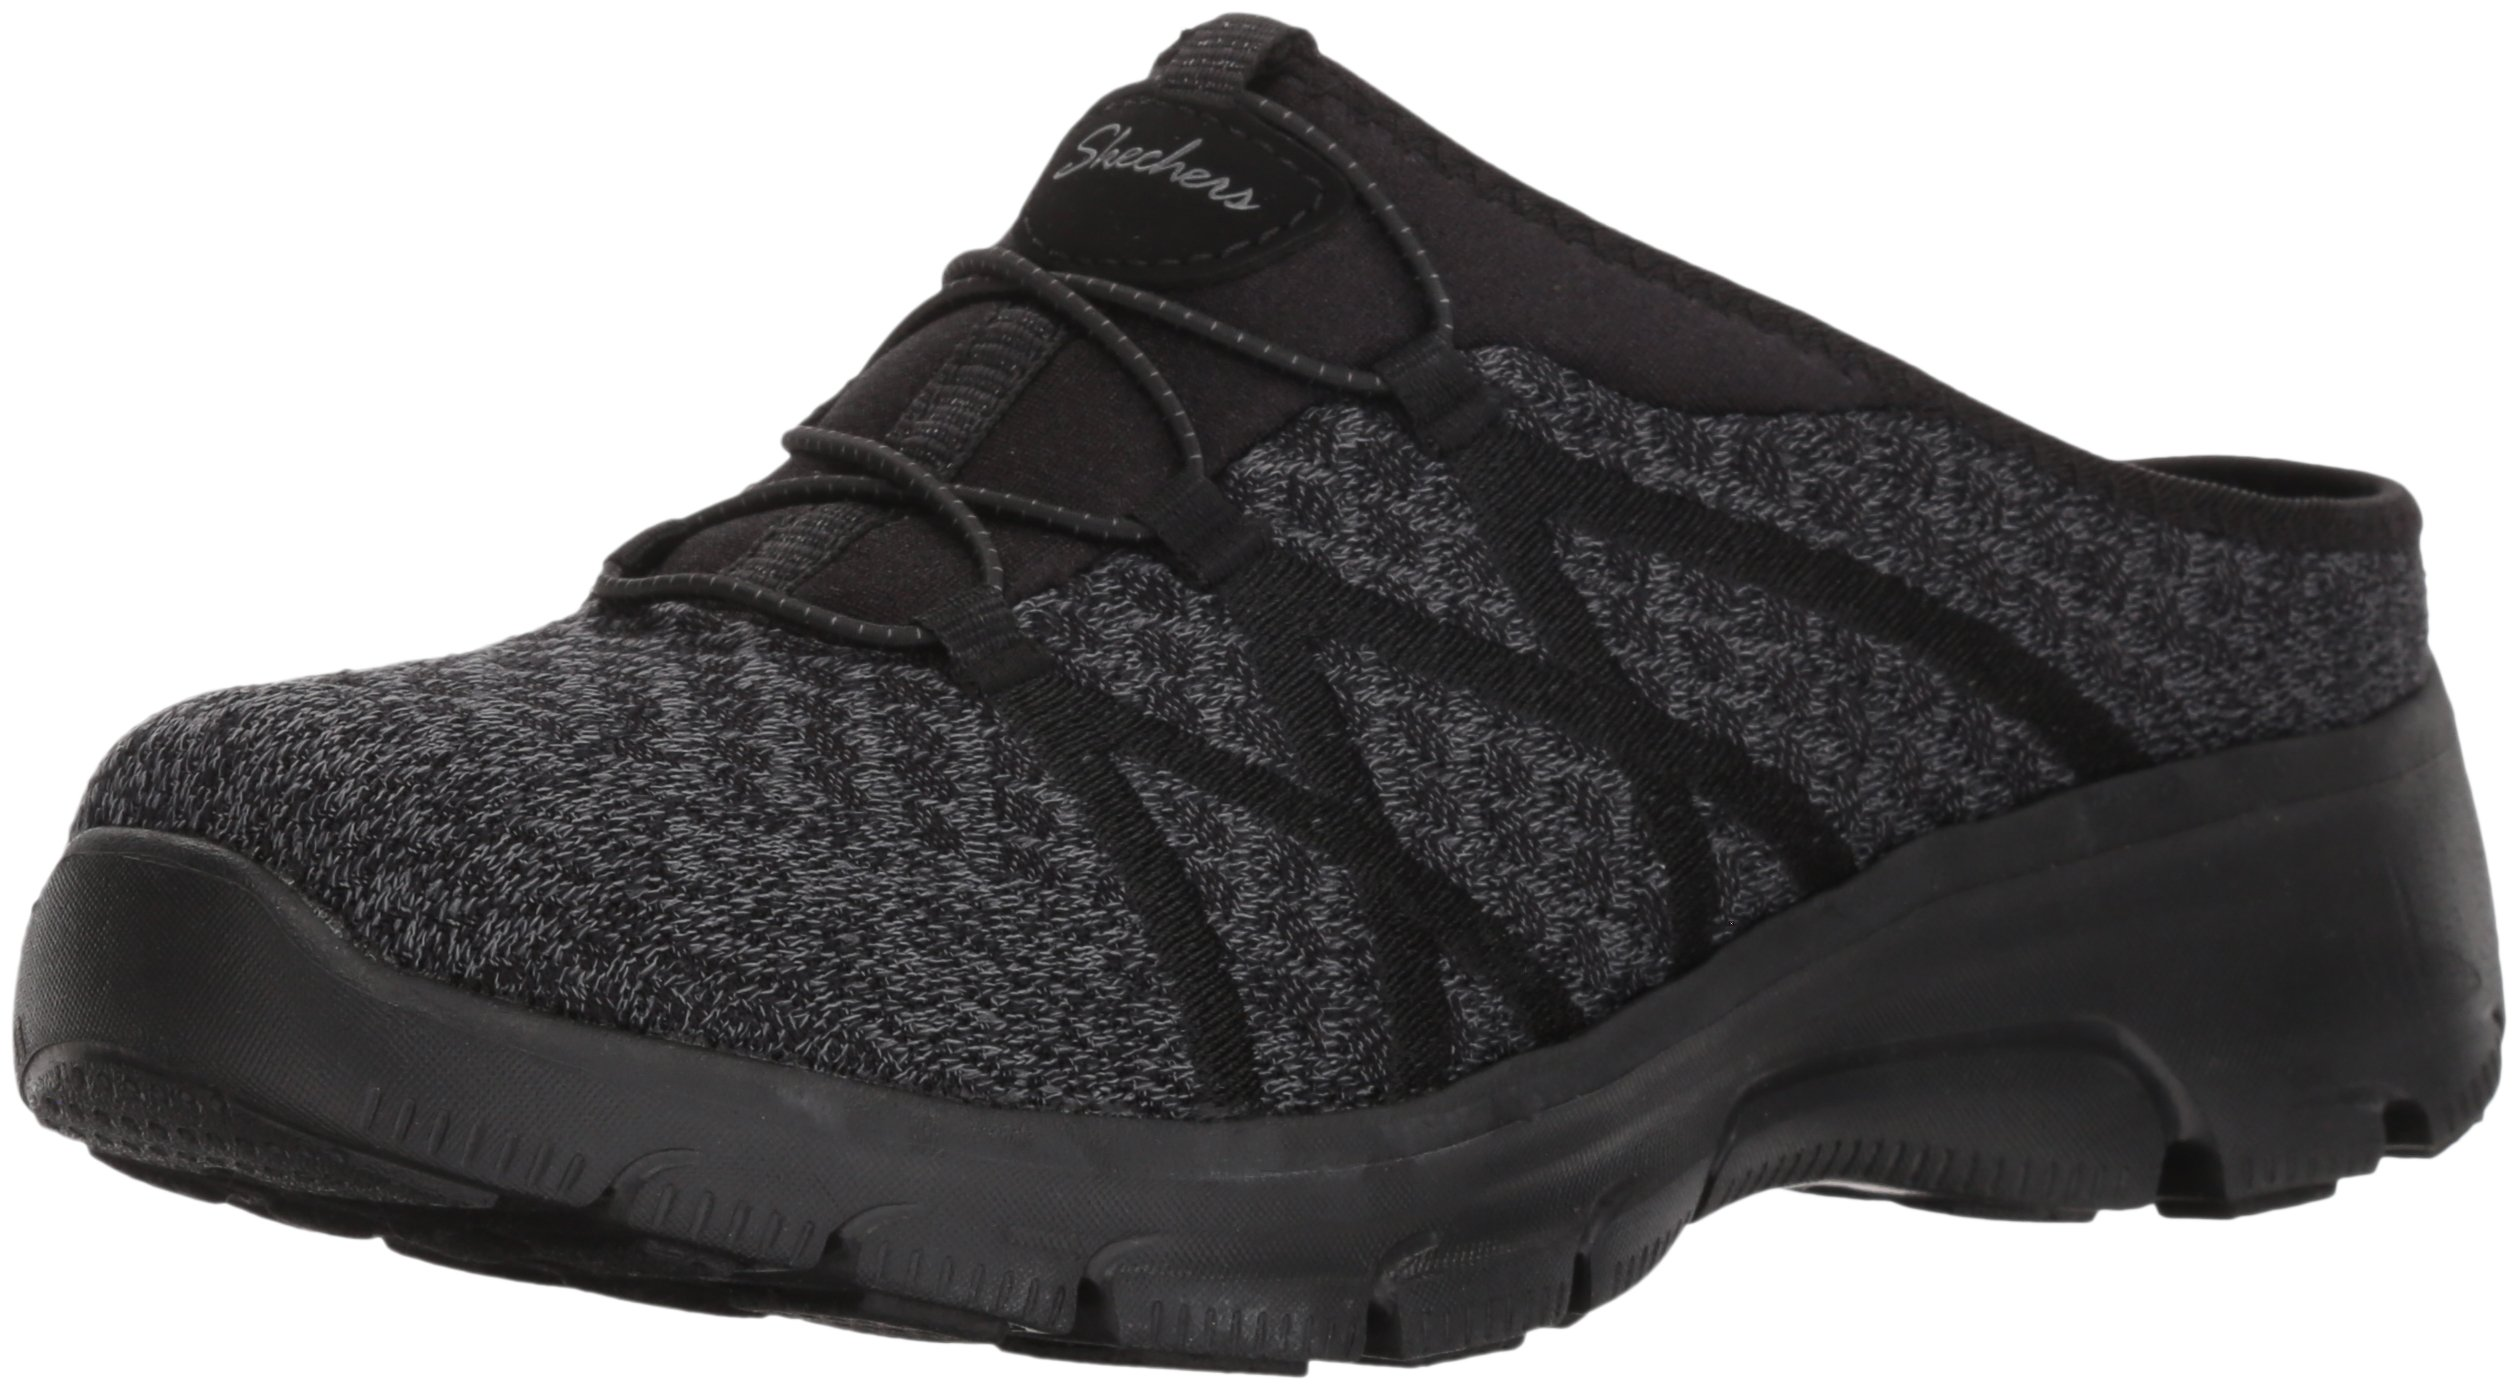 Skechers Women's Knitty Gritty-Knit Bungee Version of The Easy Going-Repute Mule, Black, 7.5 M US